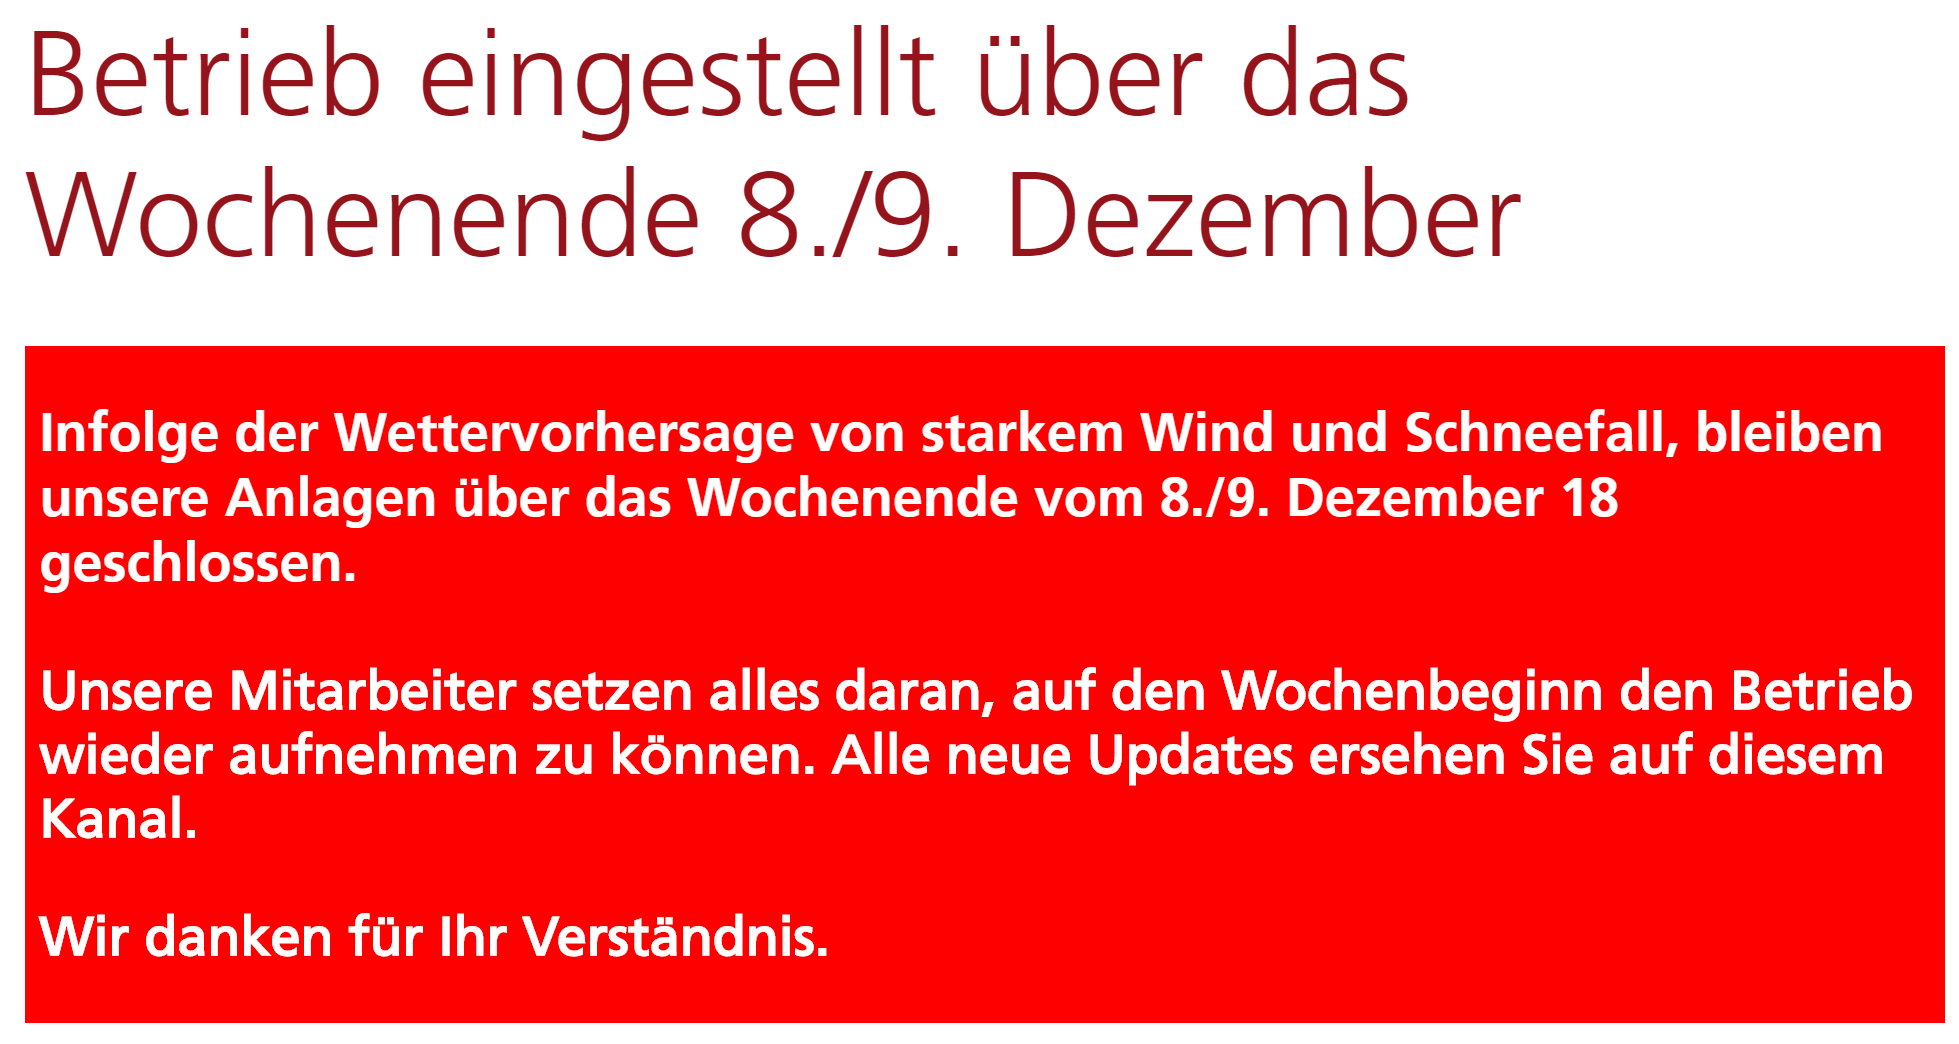 Winterstartinfos ElsigenMetsch Google Chrome 07.12.2018 10 10 04 2